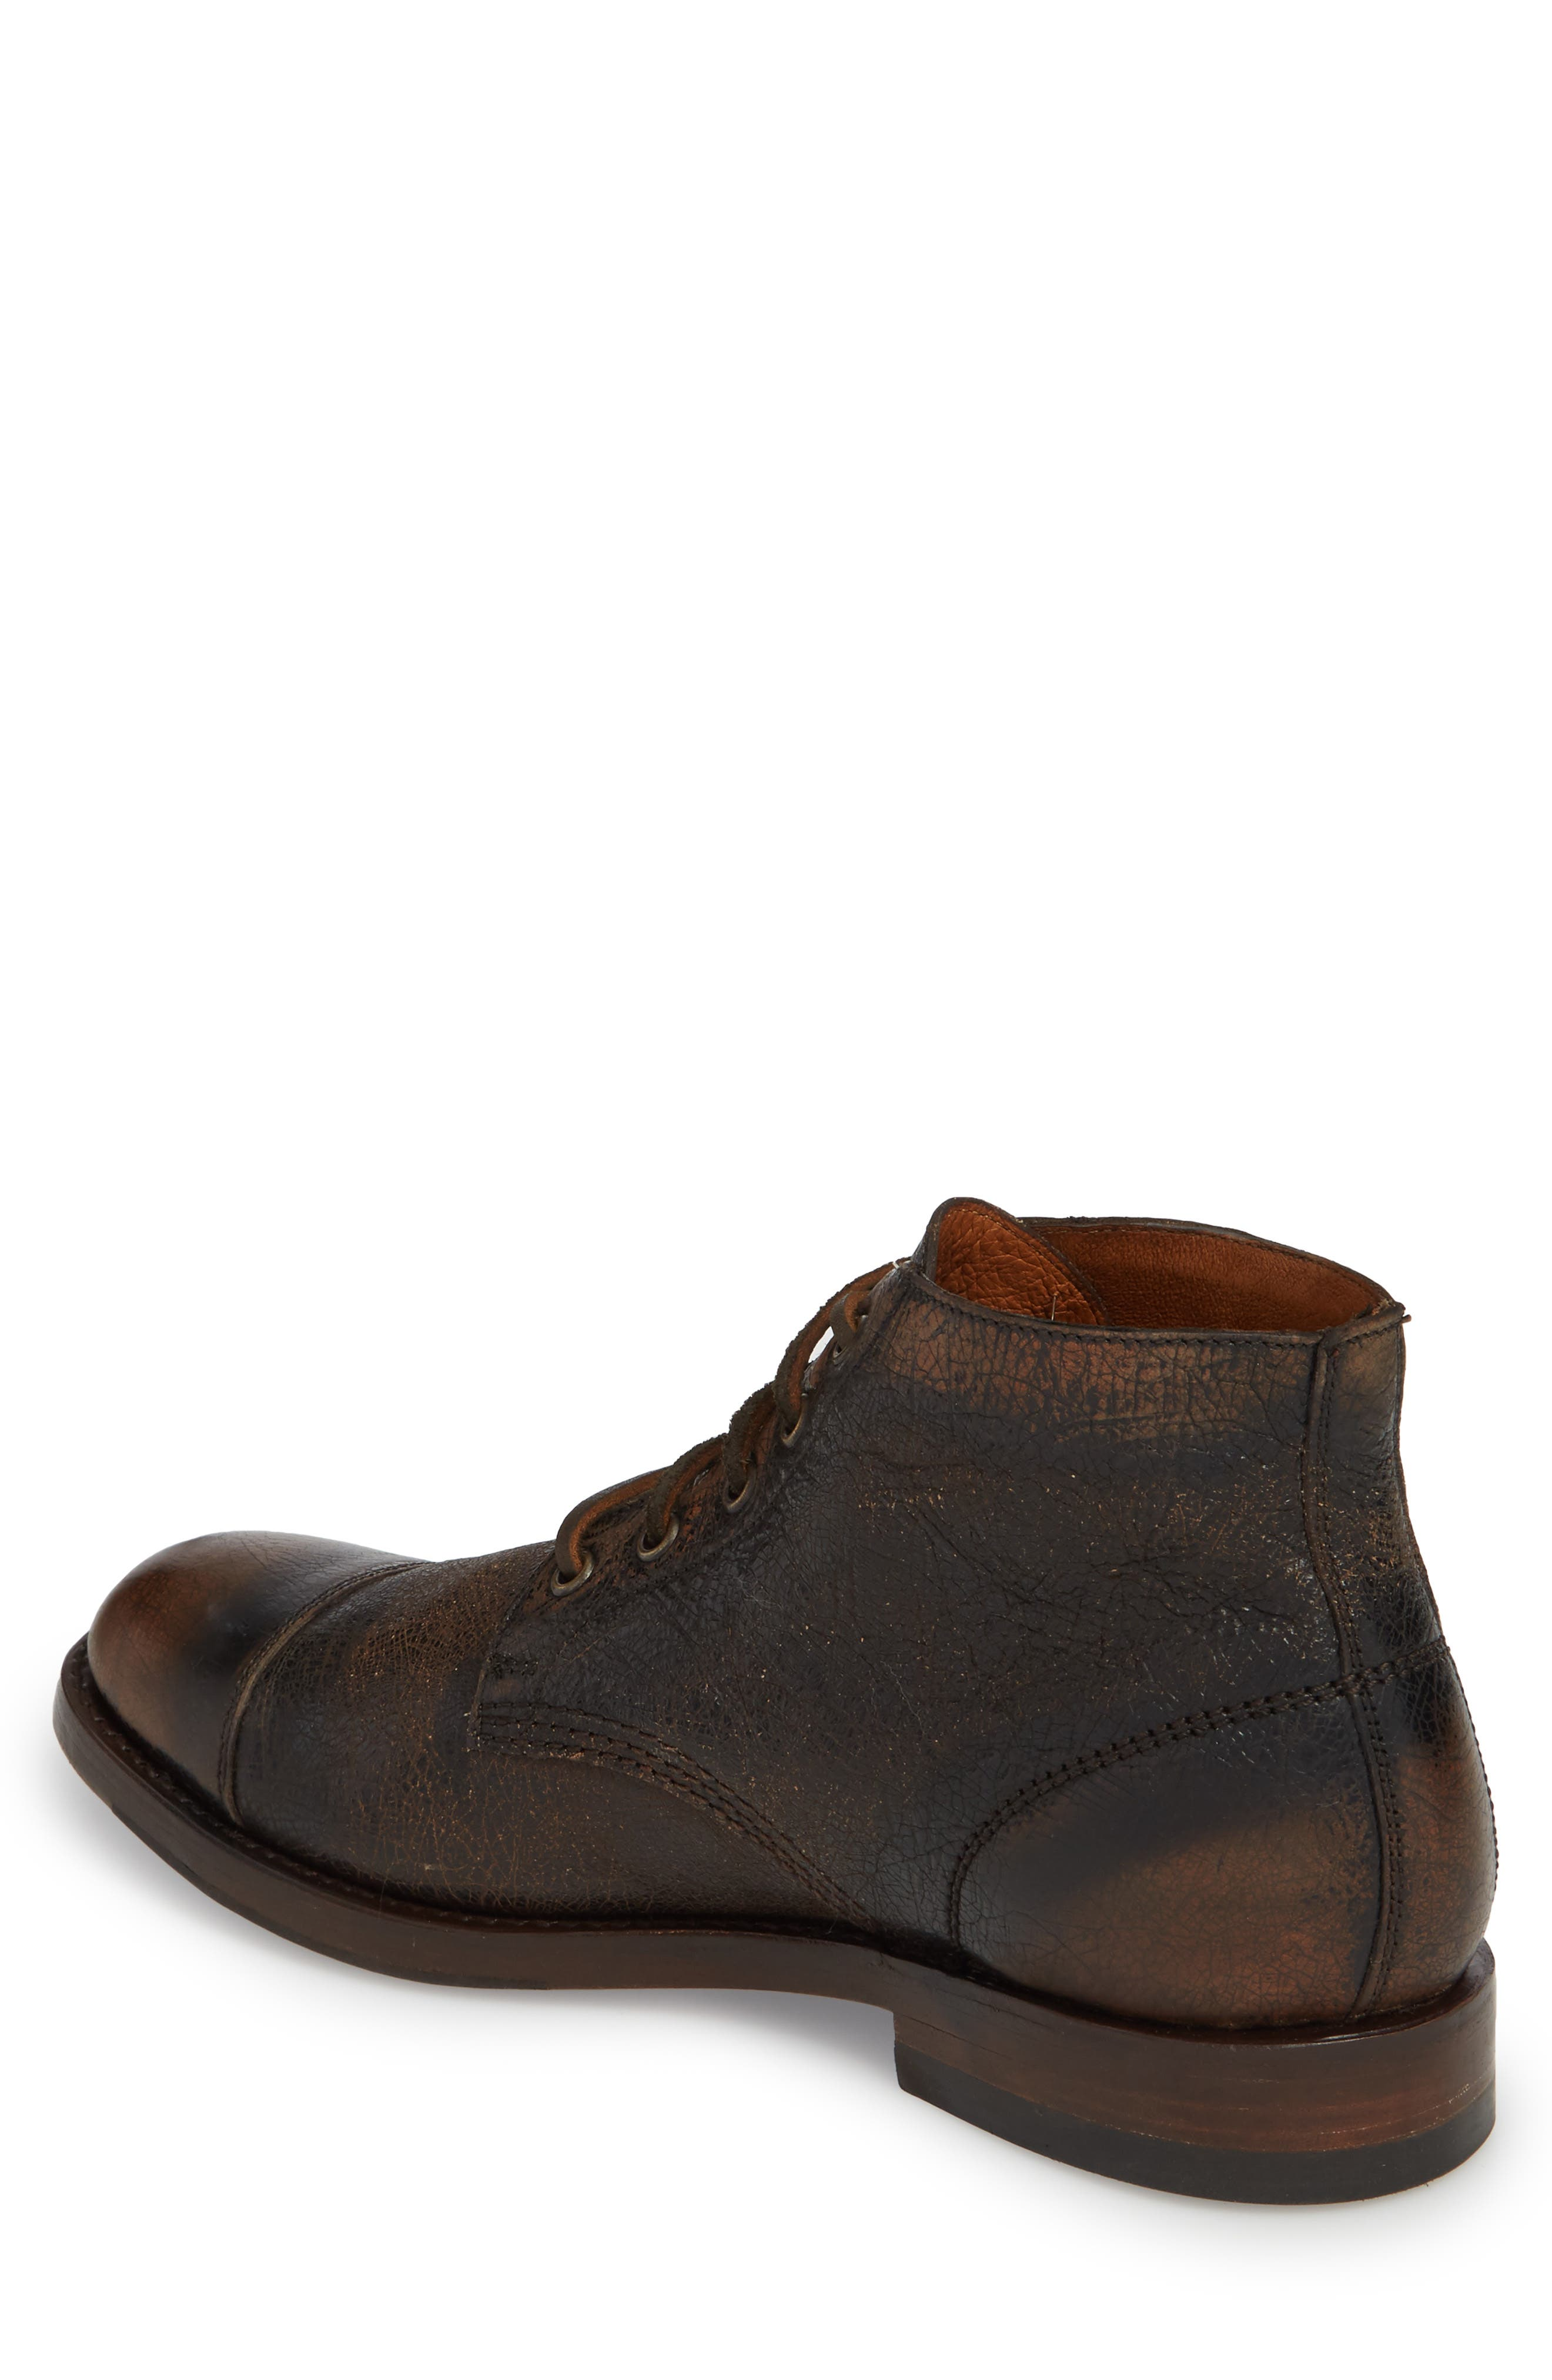 Will Chukka Boot,                             Alternate thumbnail 2, color,                             DARK BROWN LEATHER